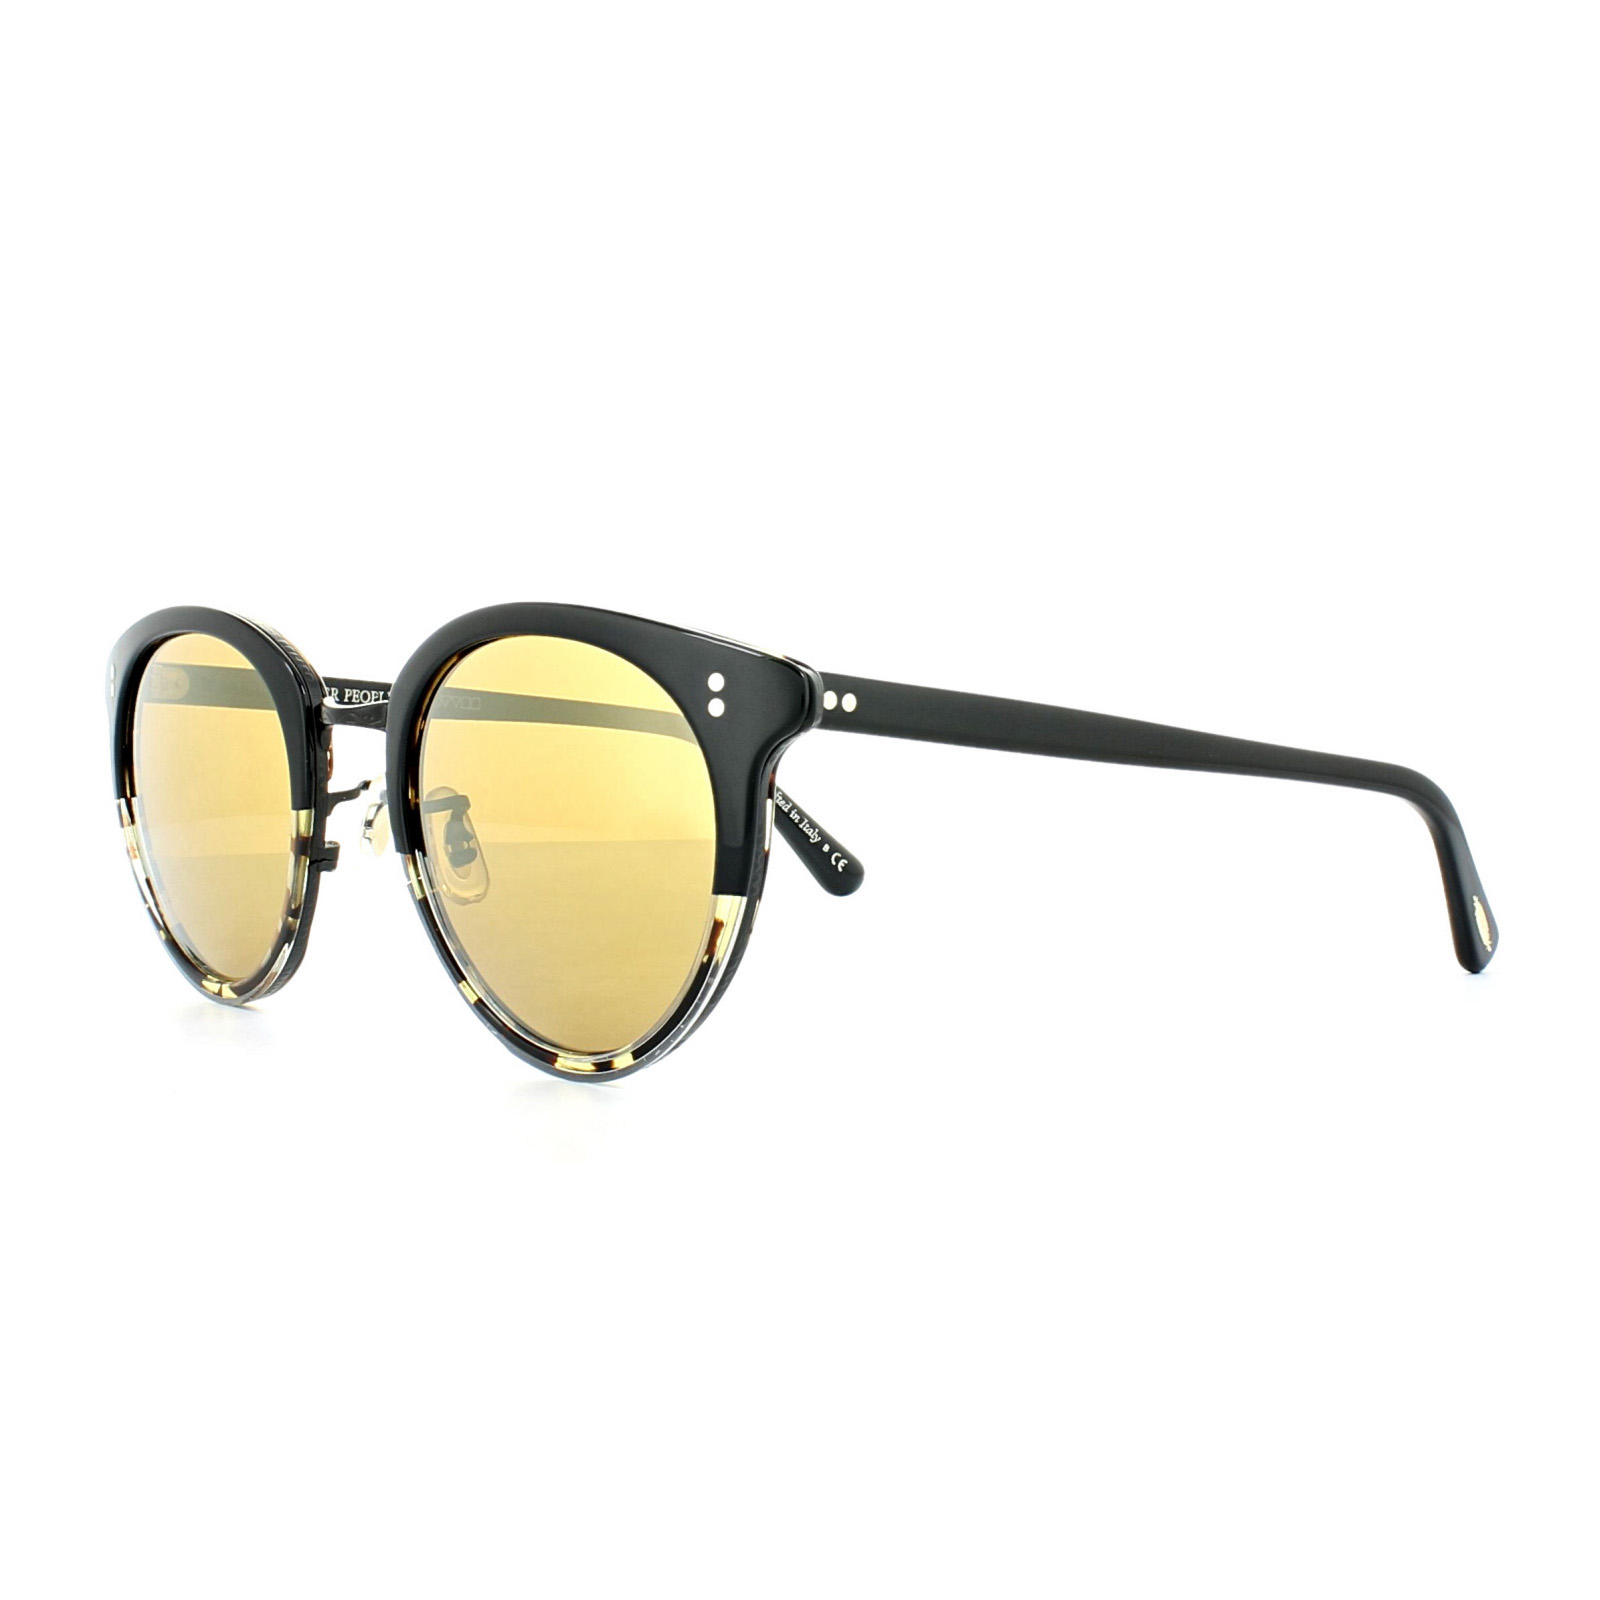 5e76021da33 Cheap Oliver Peoples Spelman 5323S Sunglasses - Discounted Sunglasses